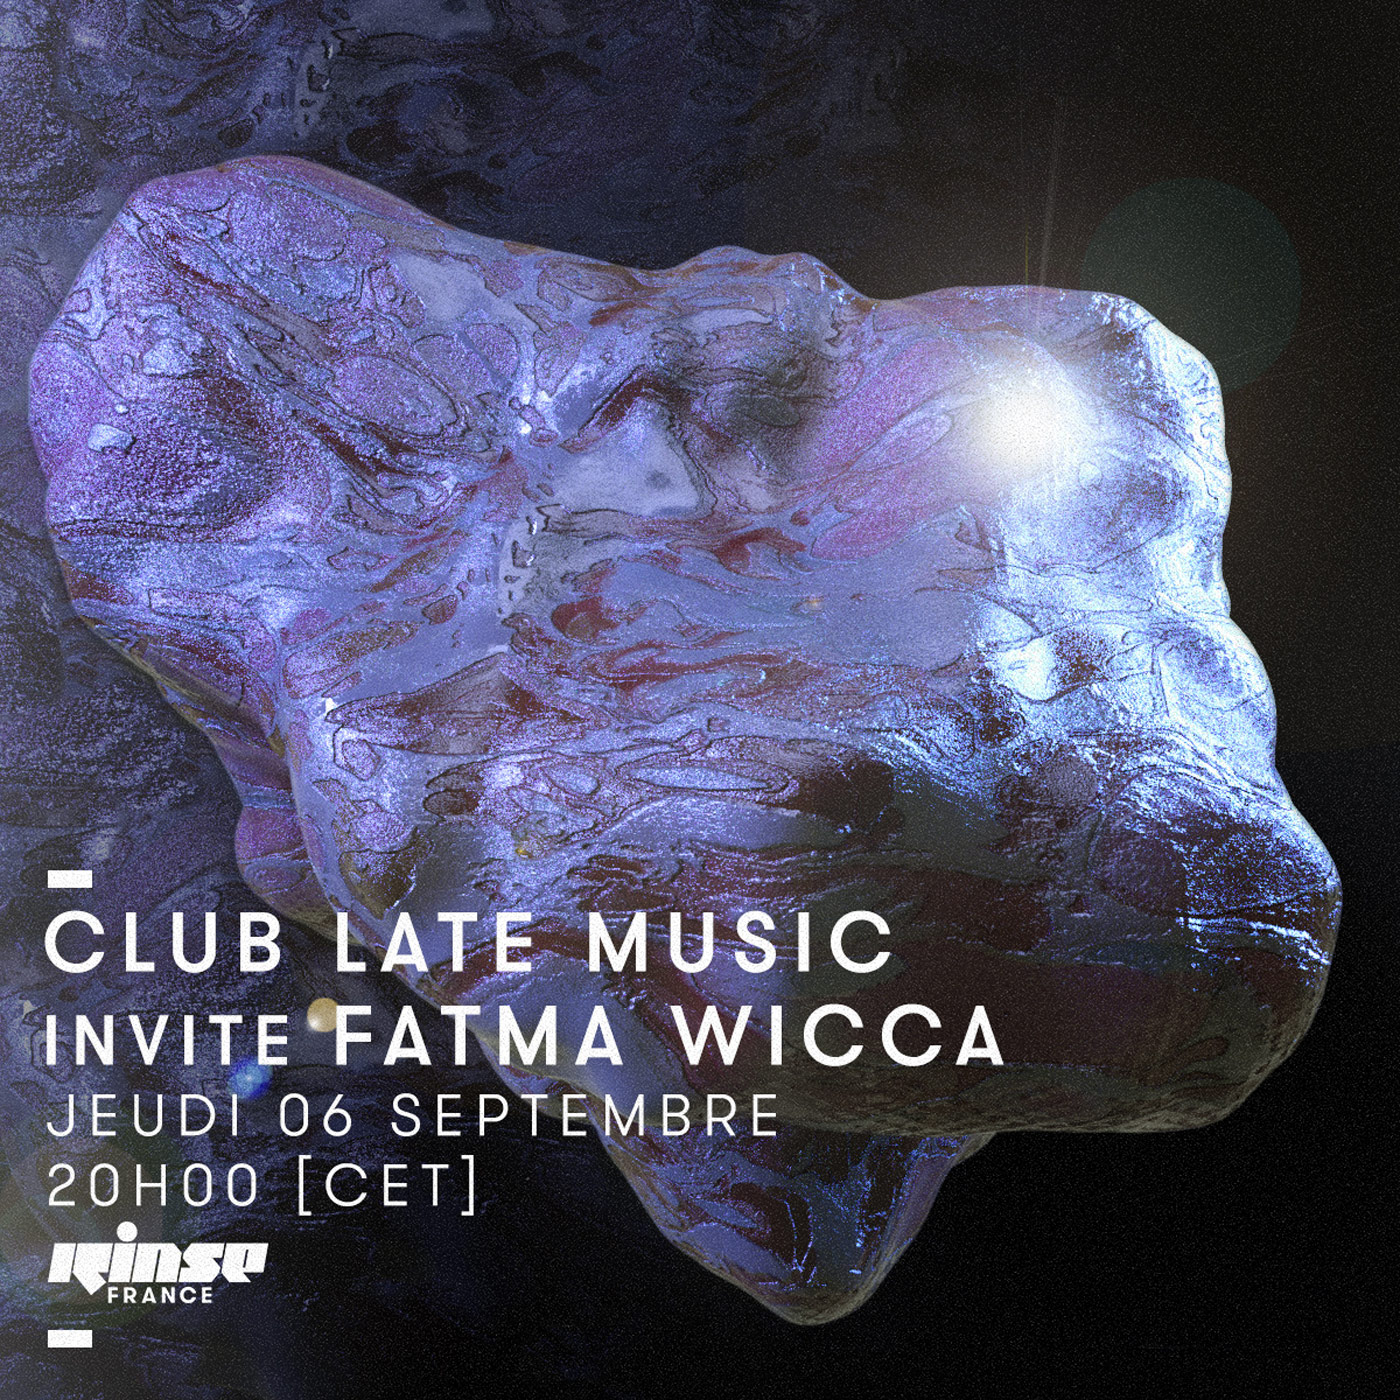 15 collide24 clm club late music - The open-source and collaborative music label Club Late Music explores new ways of producing and promoting music